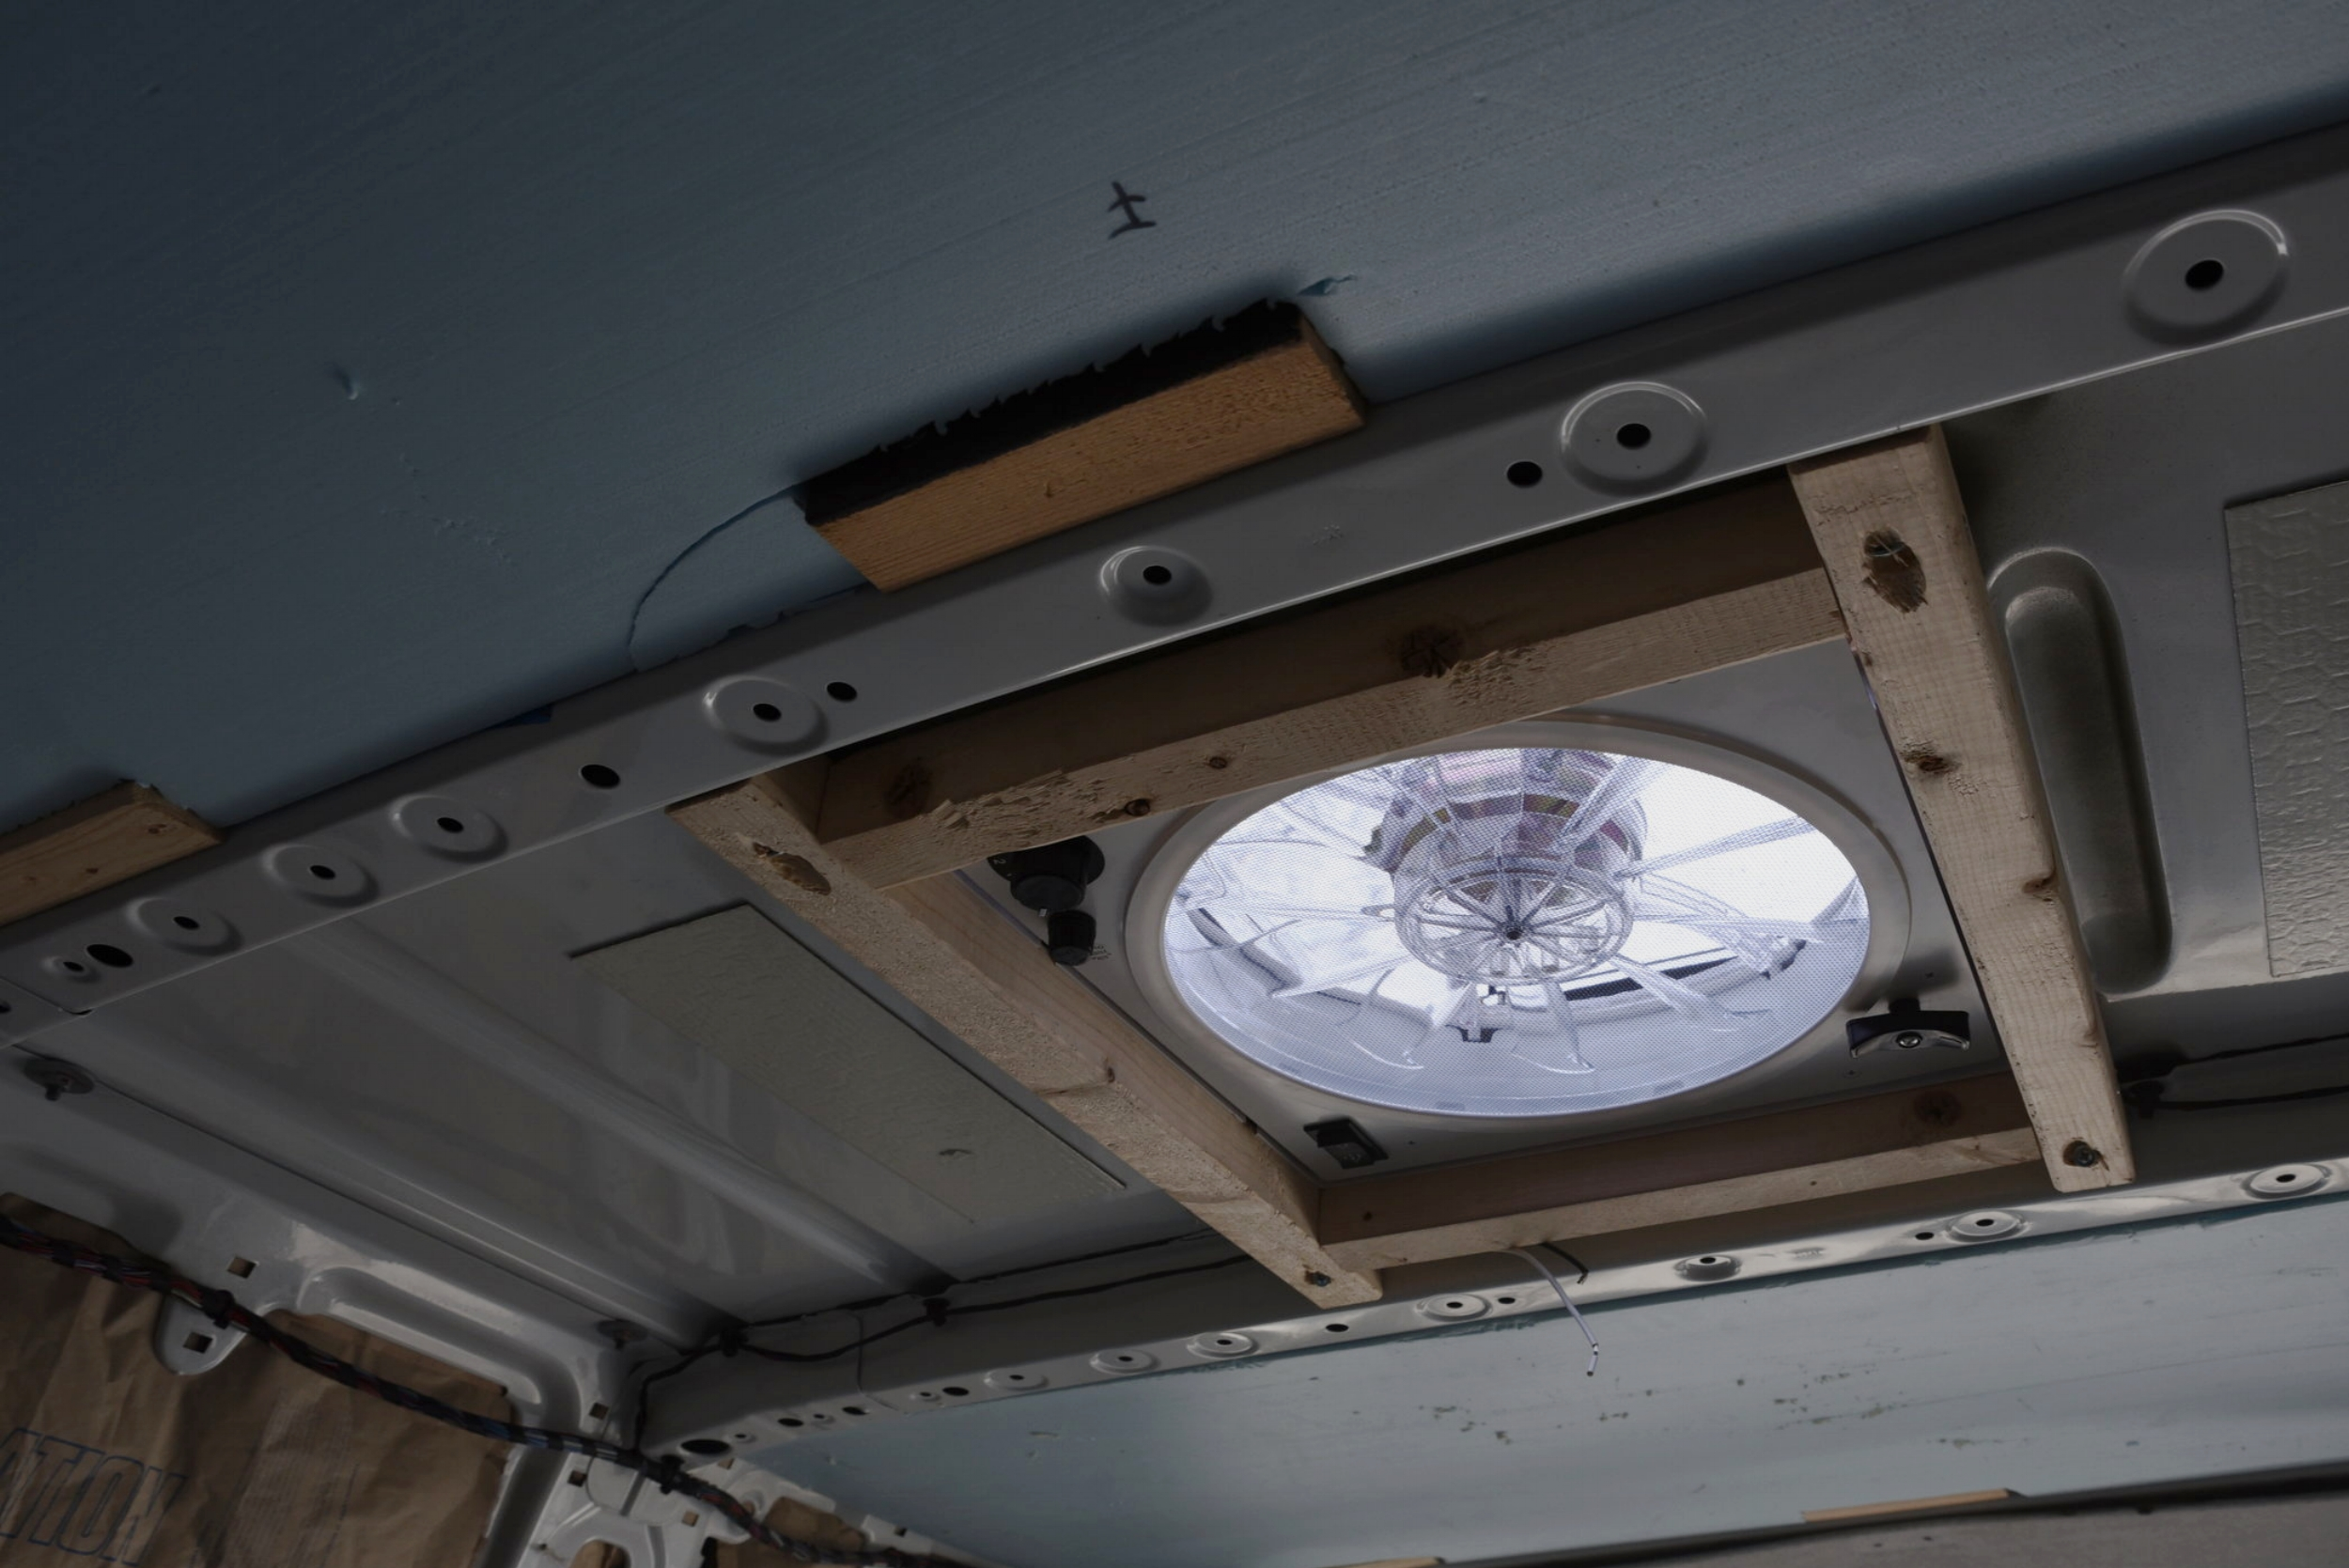 The finished fan installation in the roof of the van with the wooden frame around it.